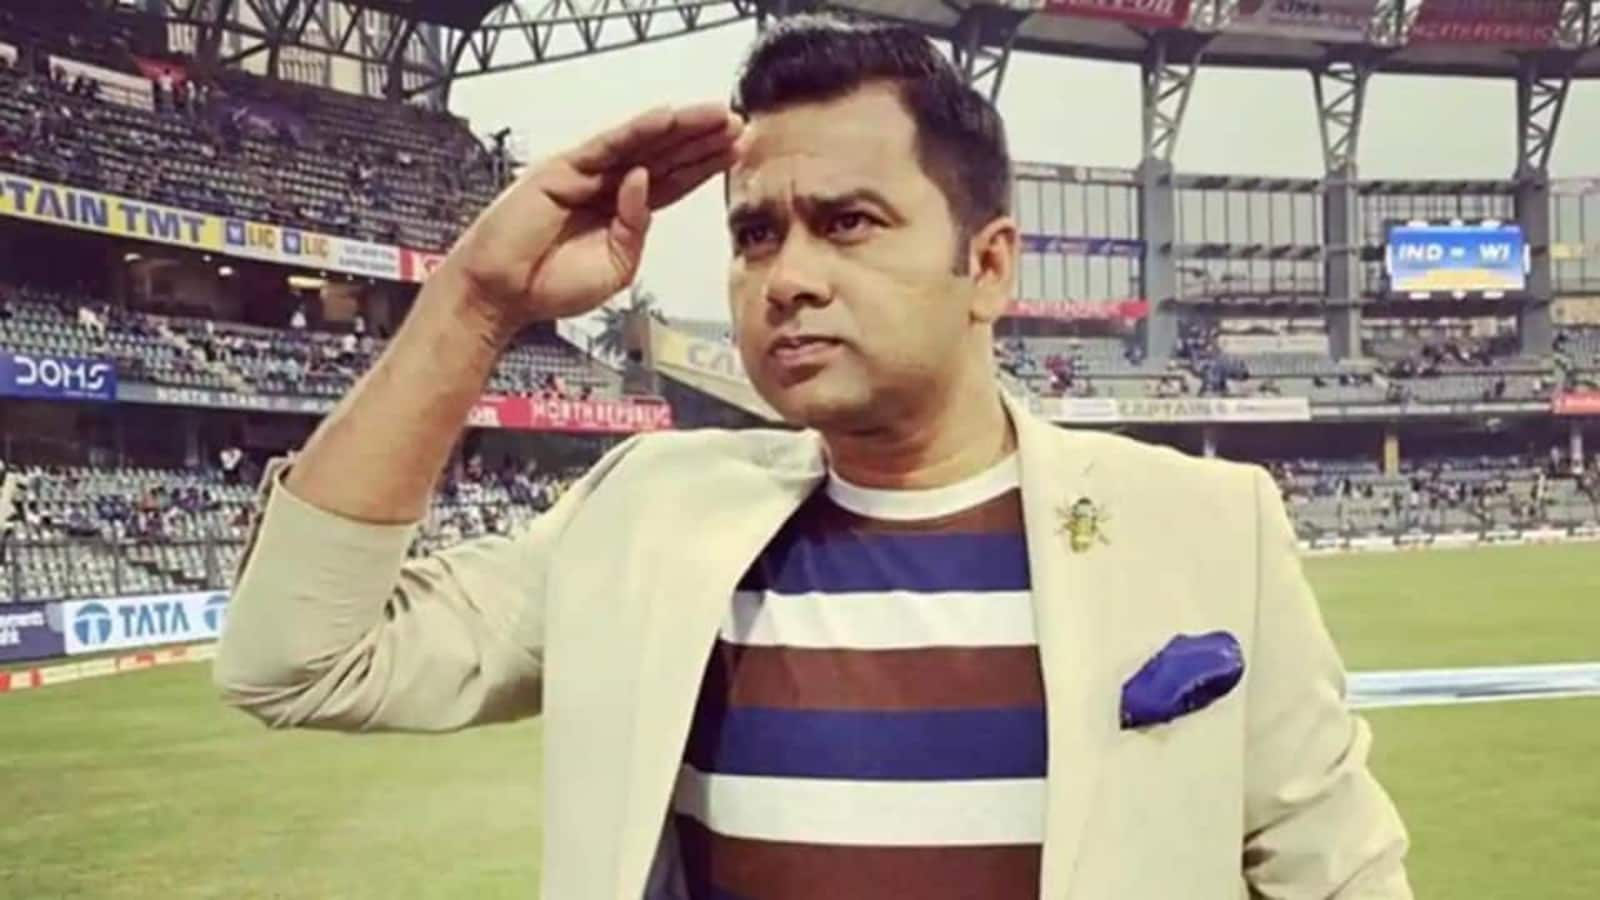 Aakash Chopra says 'It doesn't sit right with me' on KL Rahul in IPL 2021